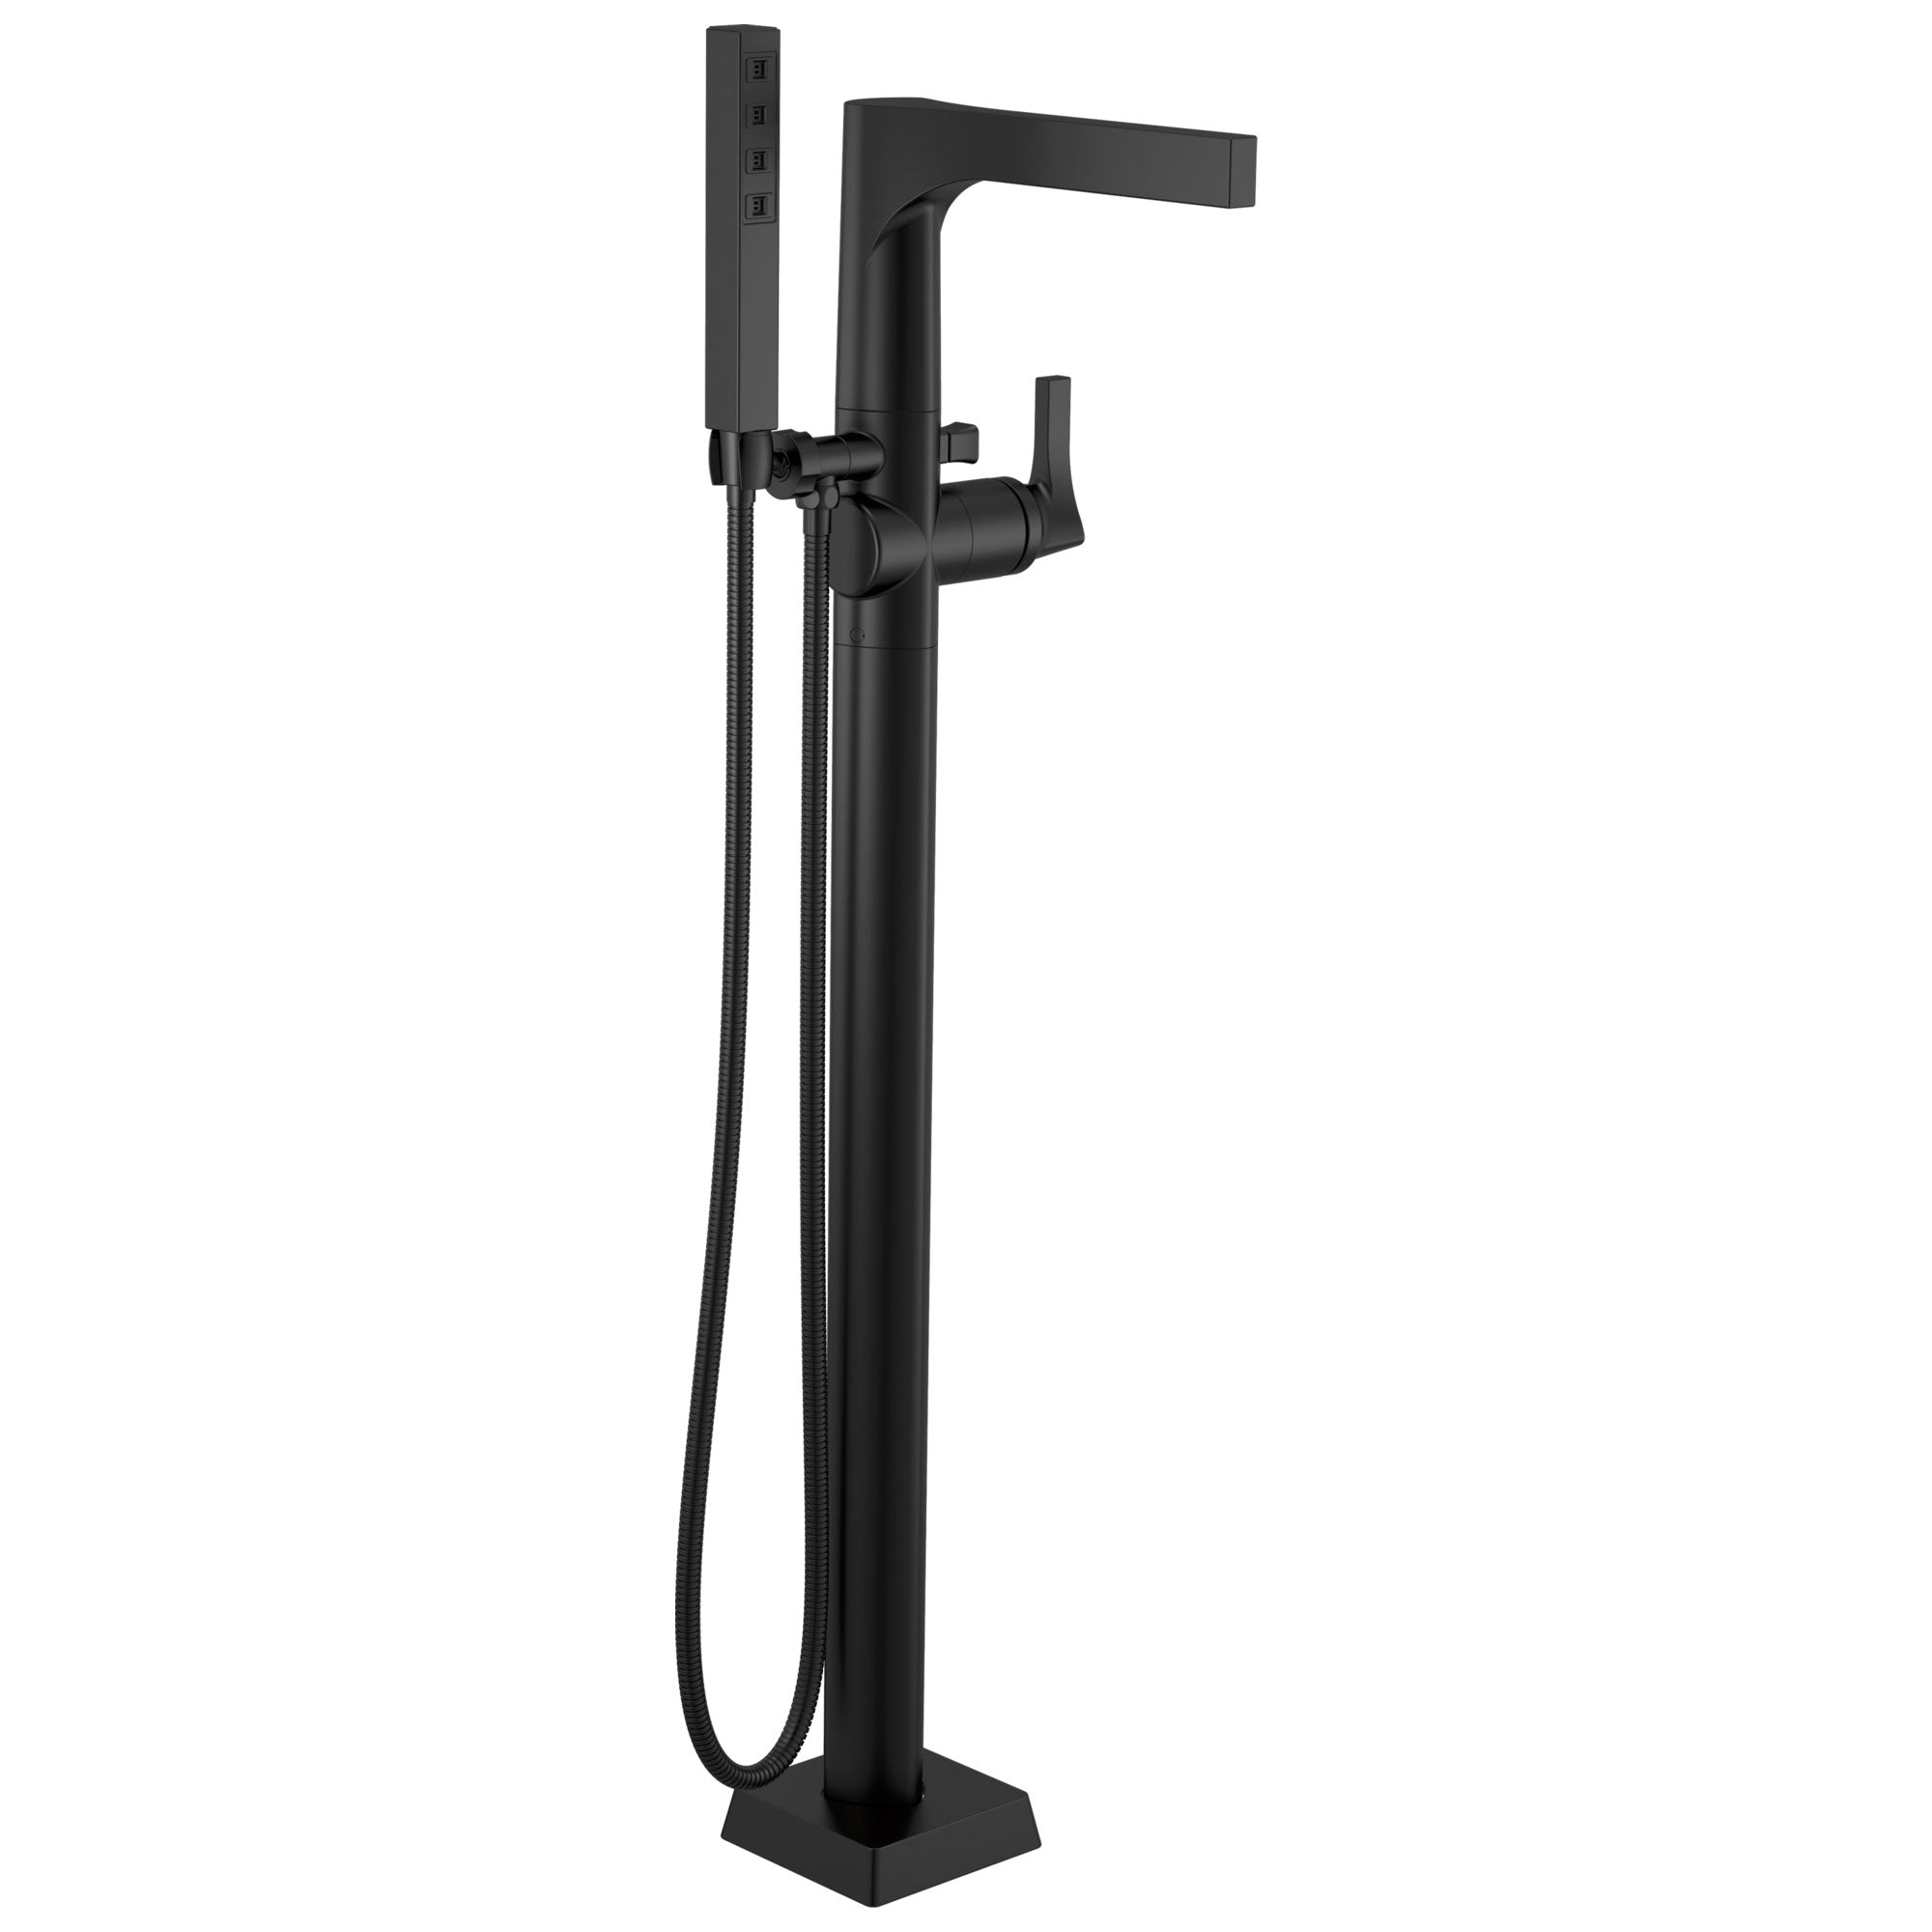 Delta Zura Matte Black Finish Single Handle Floor Mount Tub Filler Faucet with Hand Shower Trim Kit (Requires Valve) DT4774BLFL